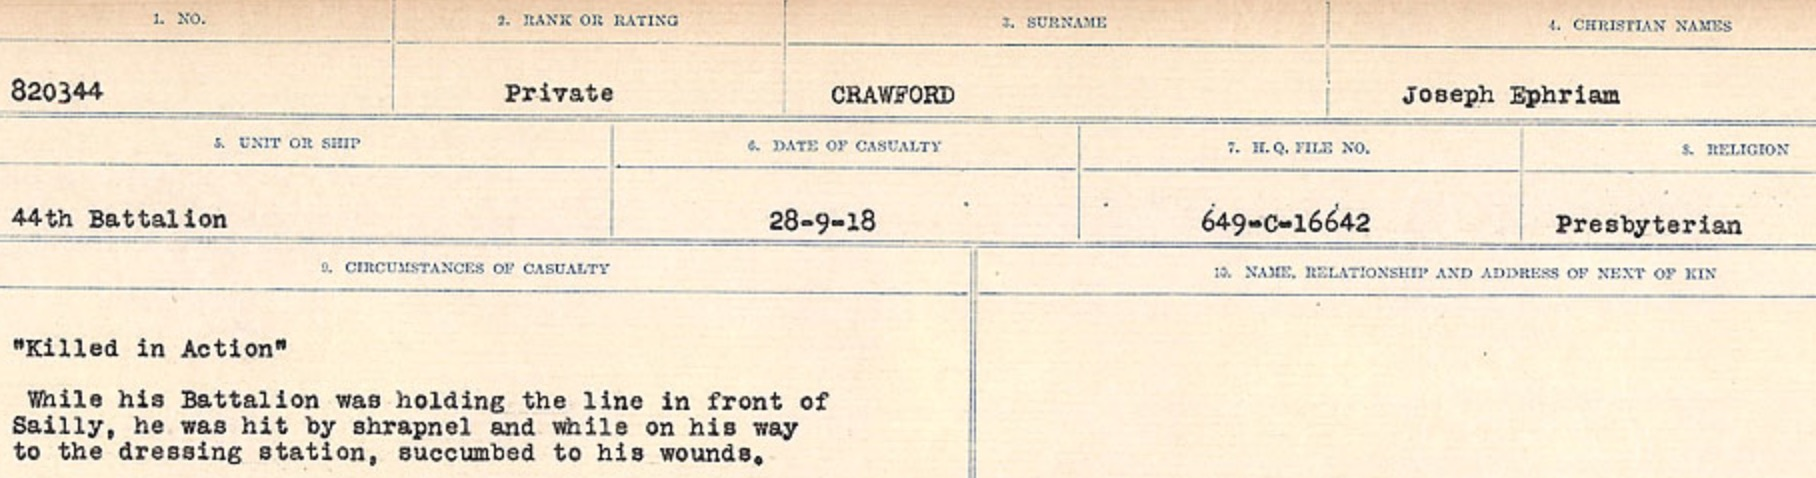 Circumstances of death registers– Source: Library and Archives Canada. CIRCUMSTANCES OF DEATH REGISTERS, FIRST WORLD WAR Surnames: CRABB TO CROSSLAND Microform Sequence 24; Volume Number 31829_B016733. Reference RG150, 1992-93/314, 168. Page 361 of 788.